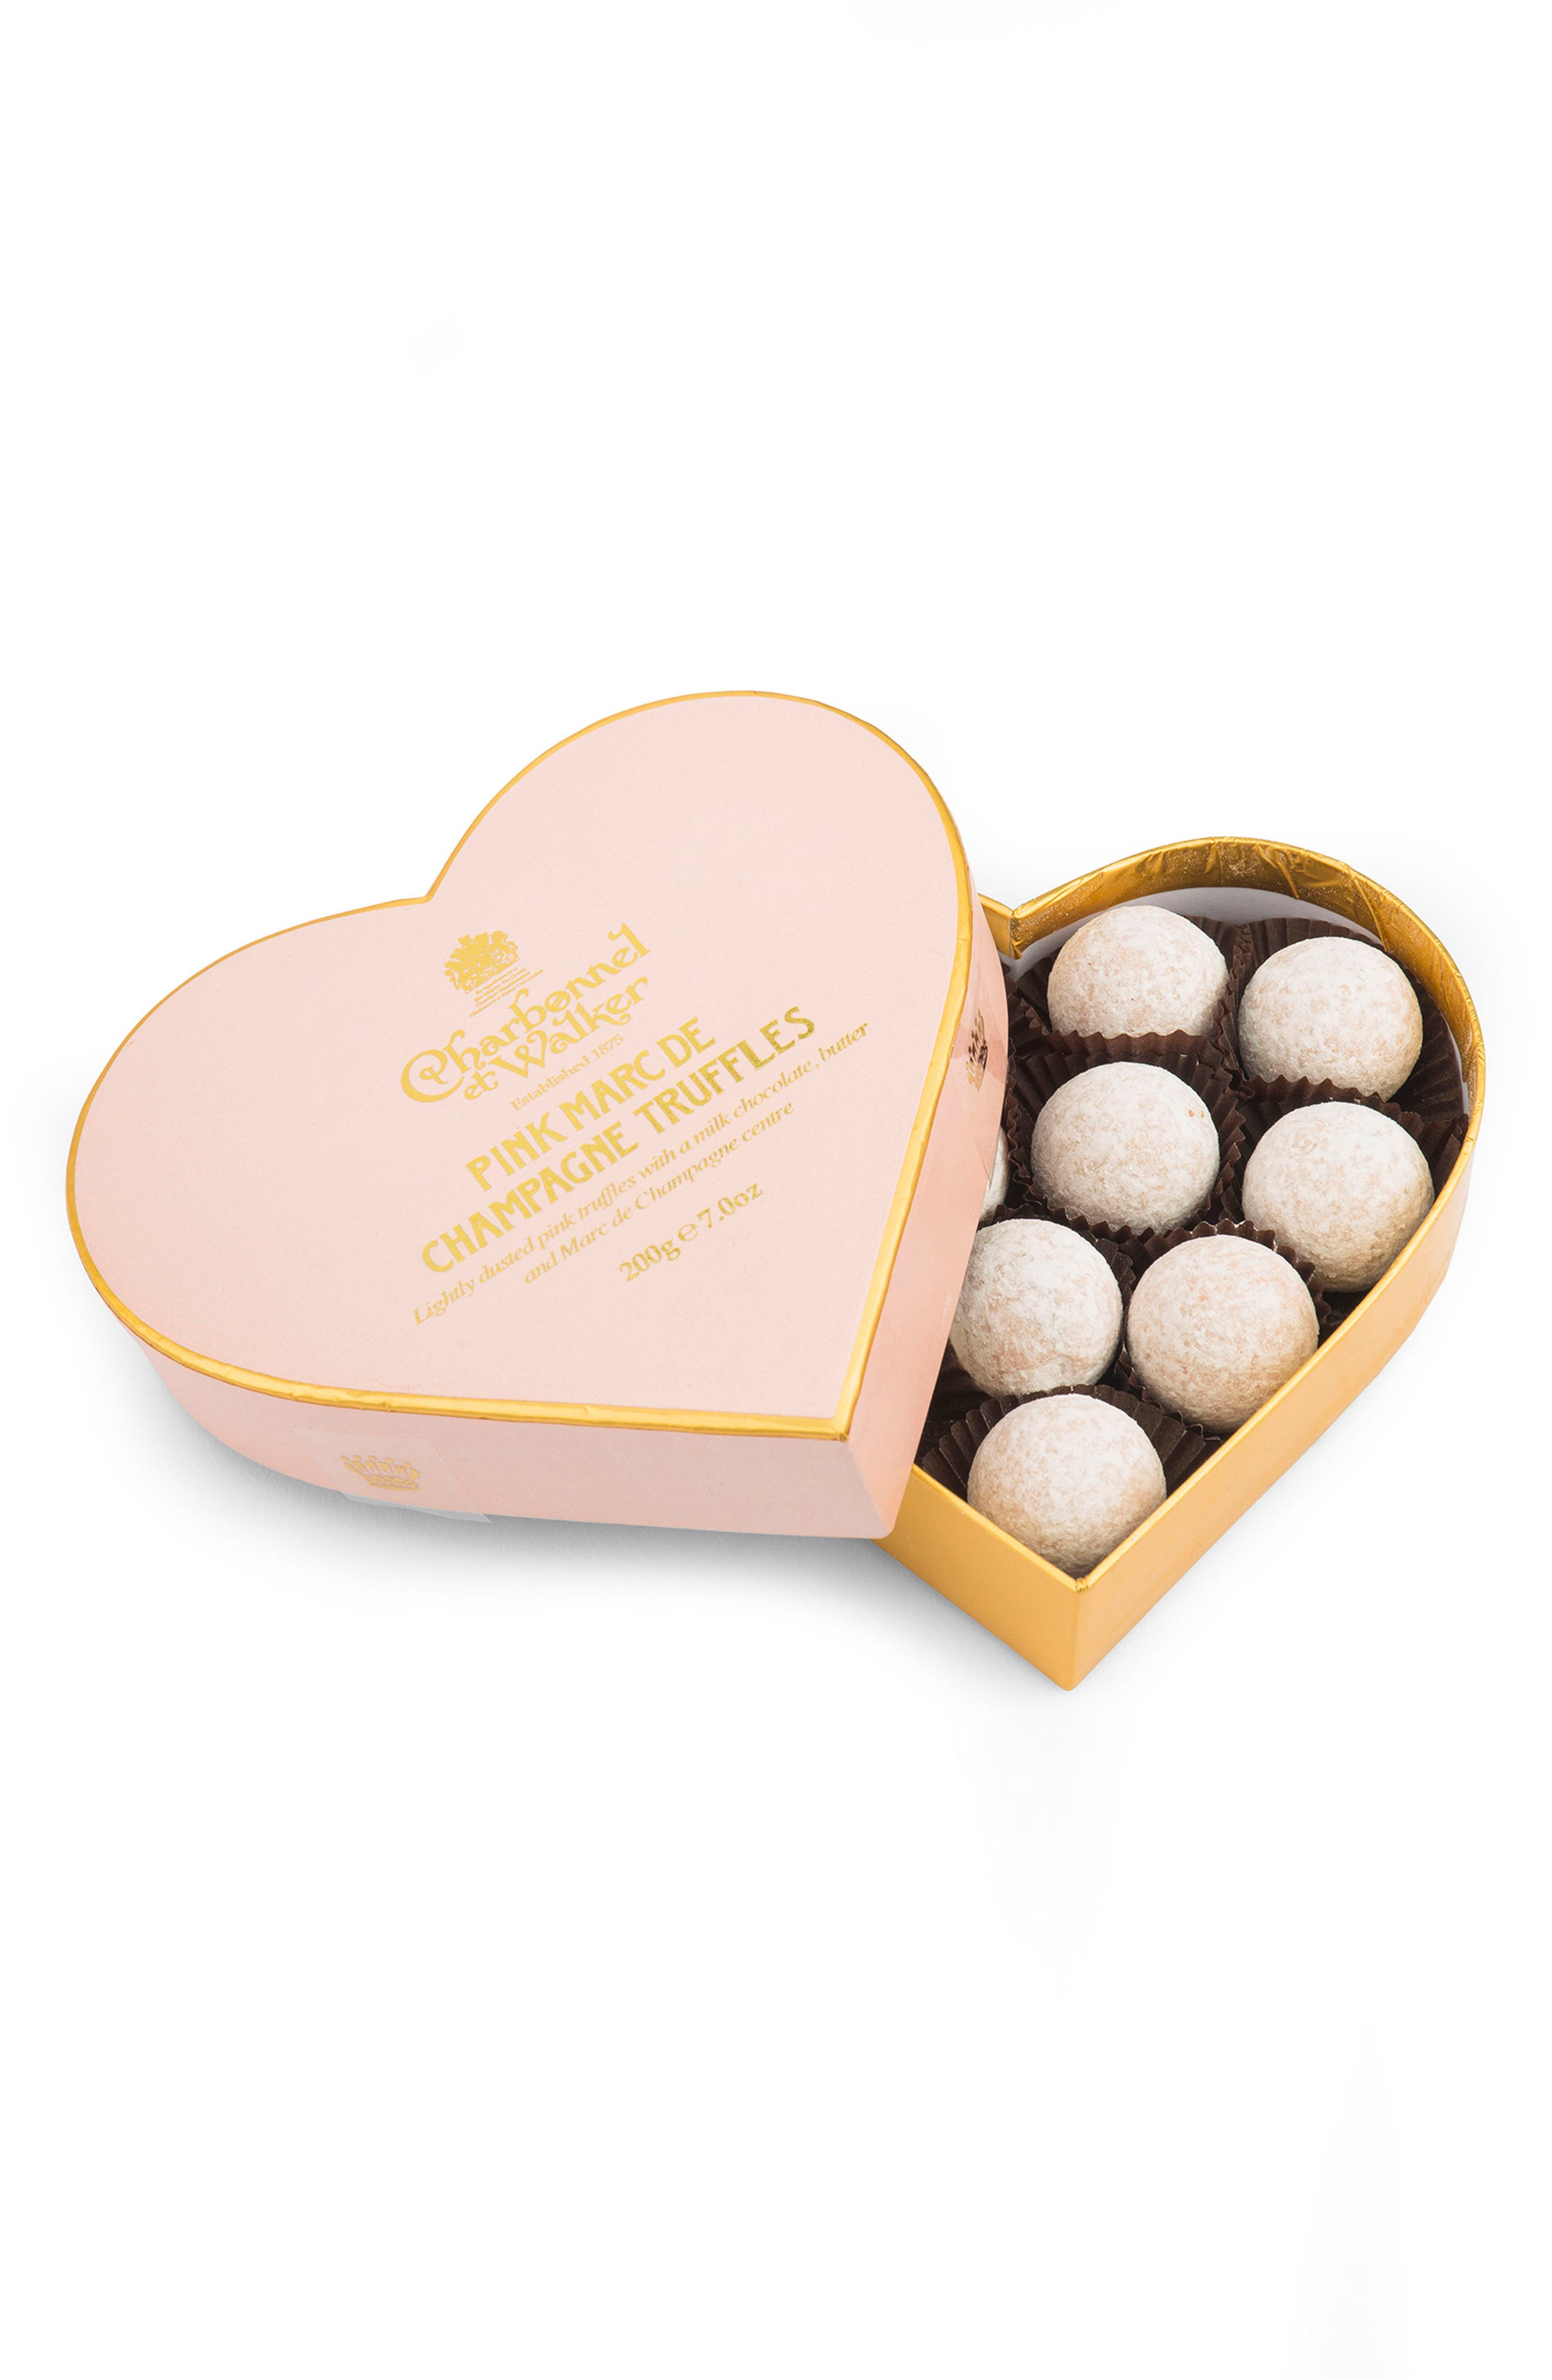 Chocolate Truffles in Heart Shaped Gift Box,                         Main,                         color, Pink Champagne